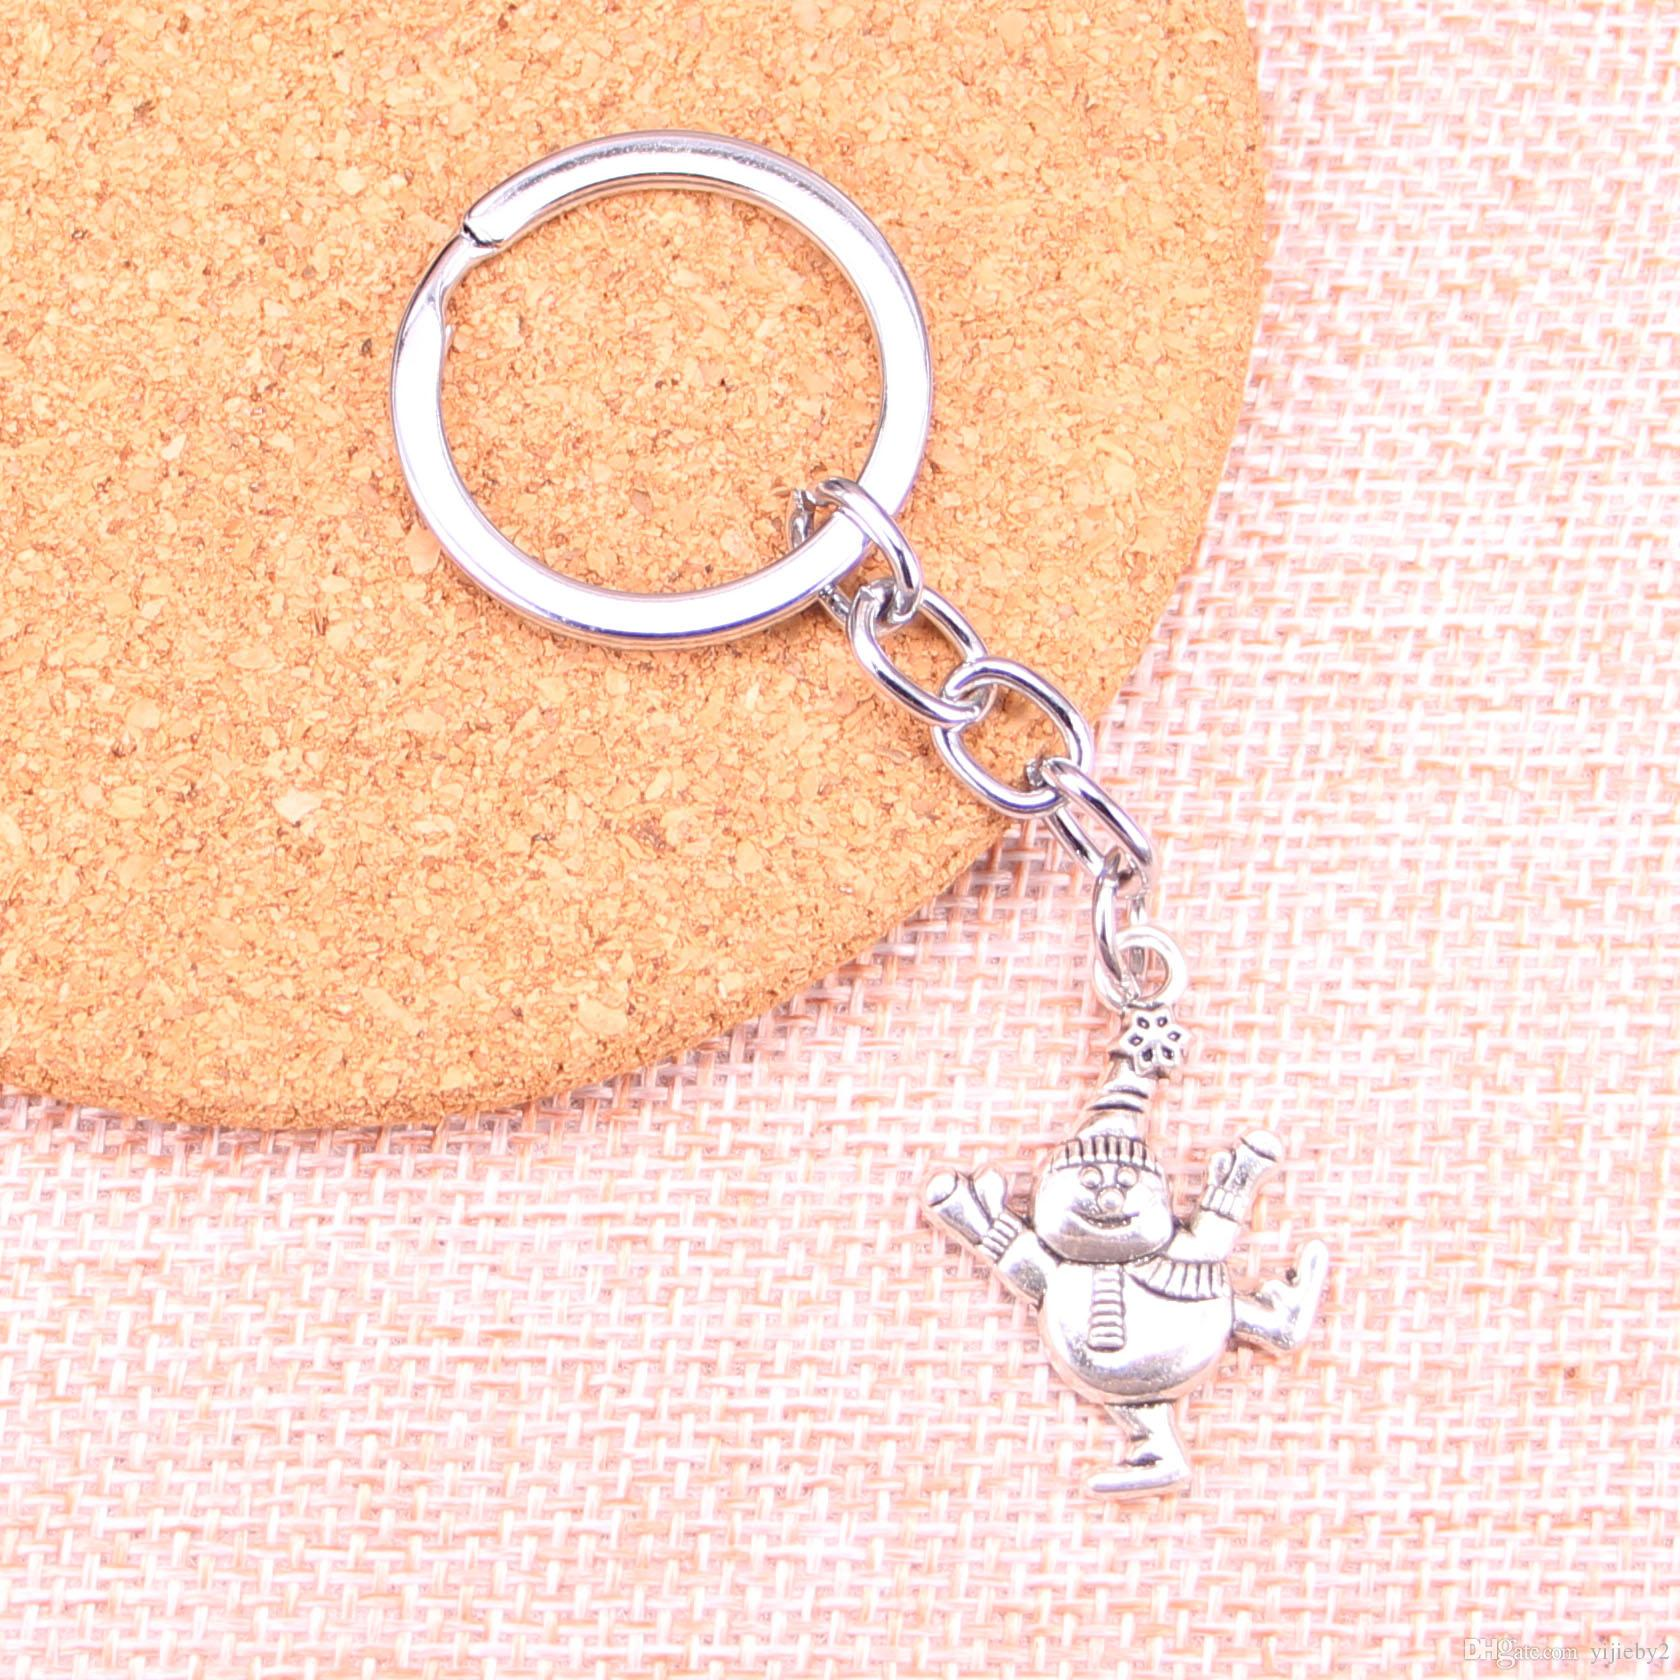 Fashion 28mm Key Ring Metal Key Chain Keychain Jewelry Antique Silver Plated snowman 29*20mm Pendant